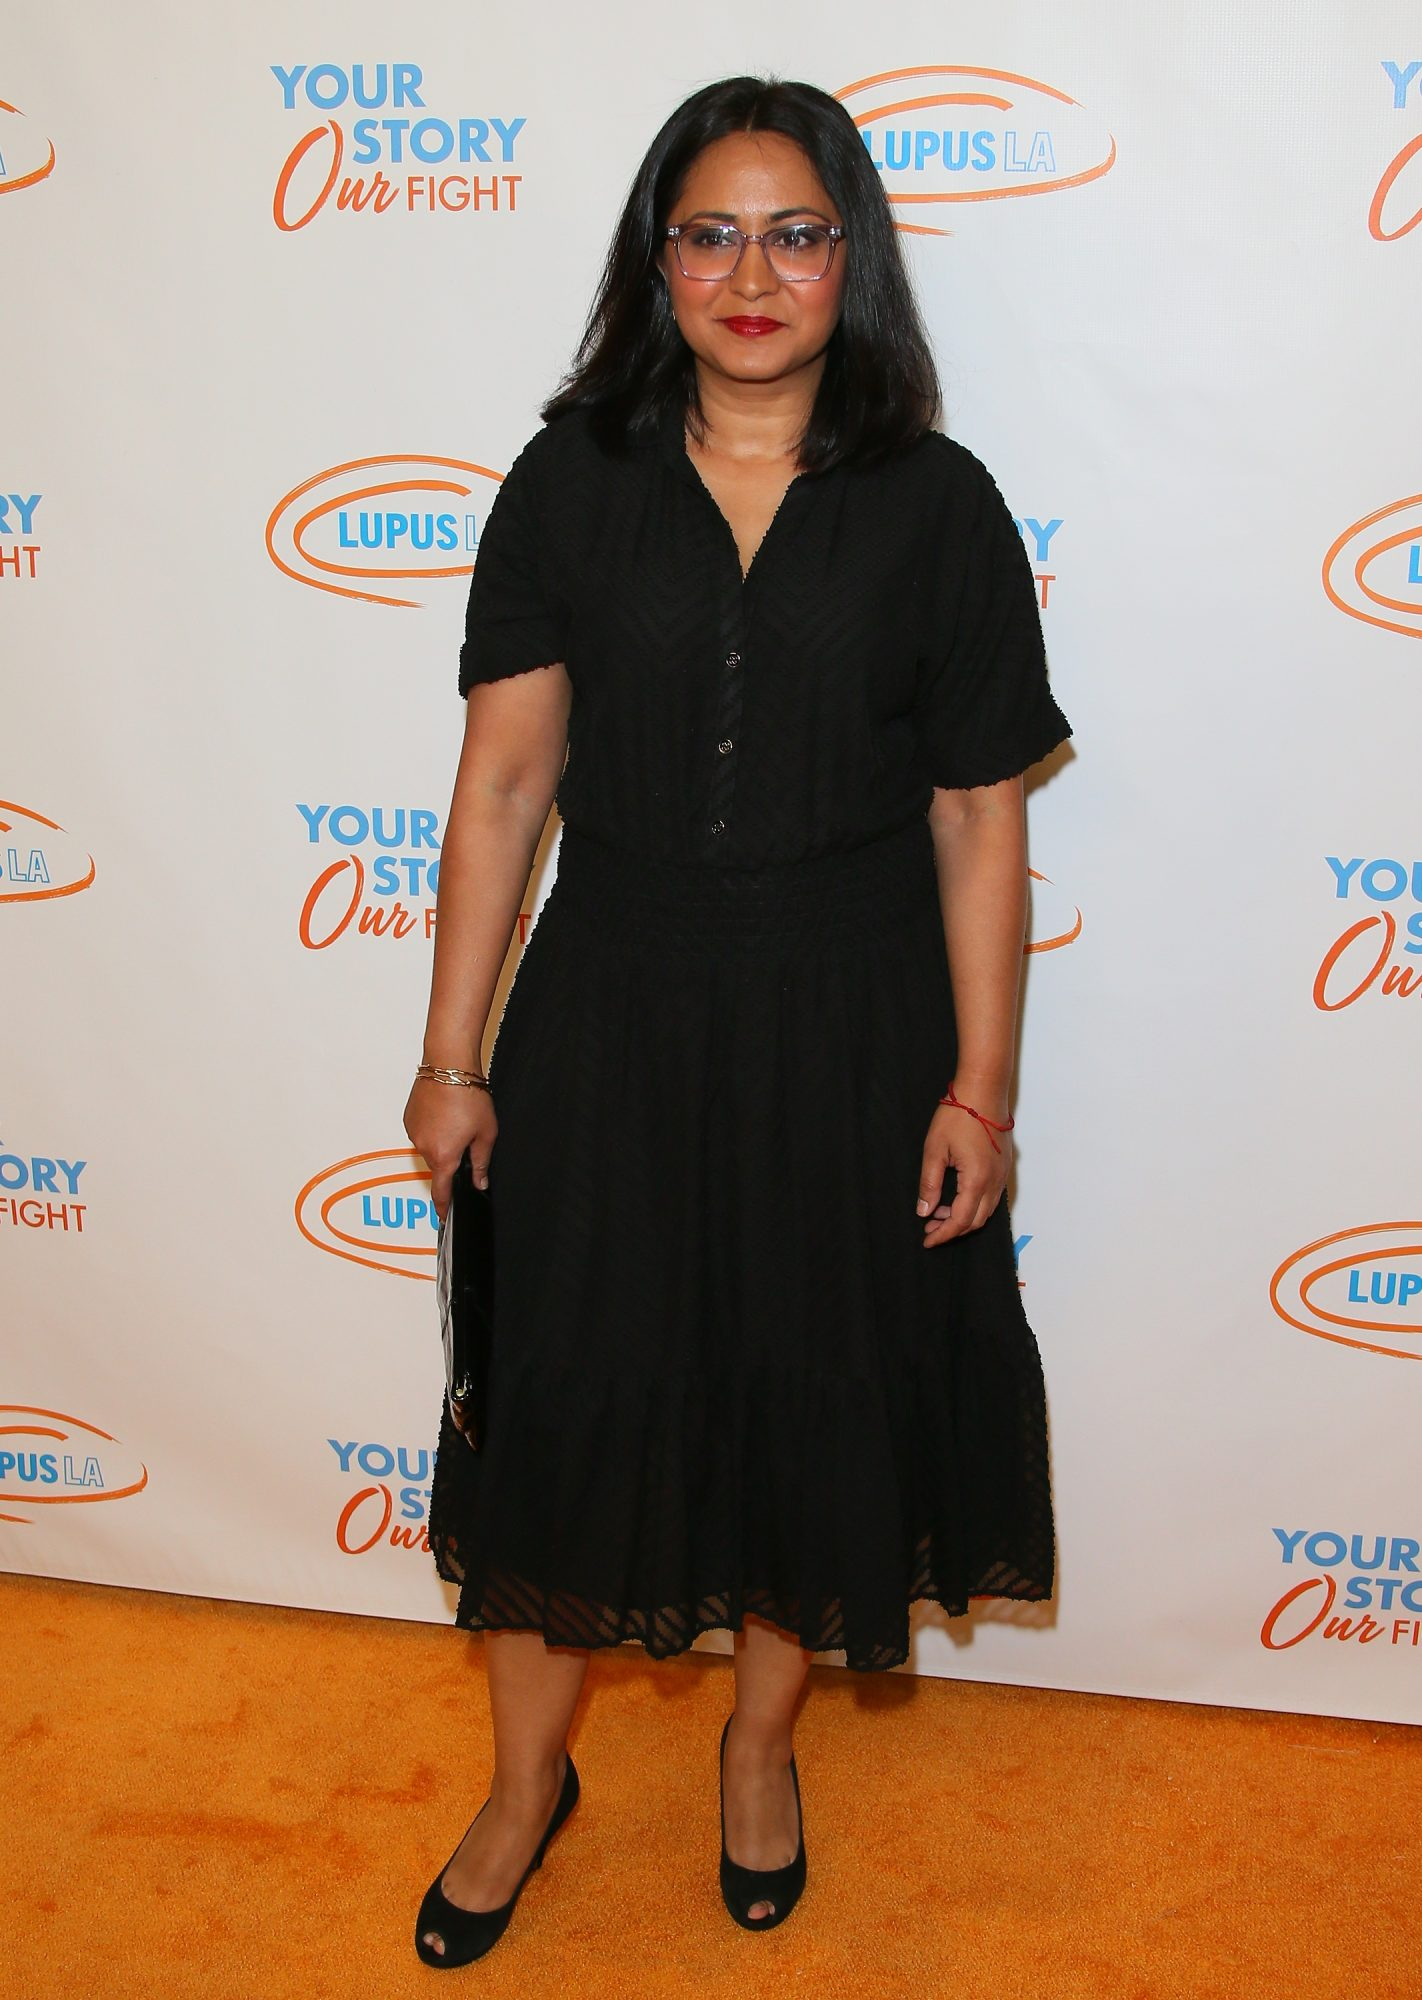 BEVERLY HILLS, CALIFORNIA - MAY 04:   Parminder Nagra attends Lupus LA Orange Ball 2019 at the Beverly Wilshire Four Seasons Hotel on May 04, 2019 in Beverly Hills, California. (Photo by JB Lacroix/Getty Images)